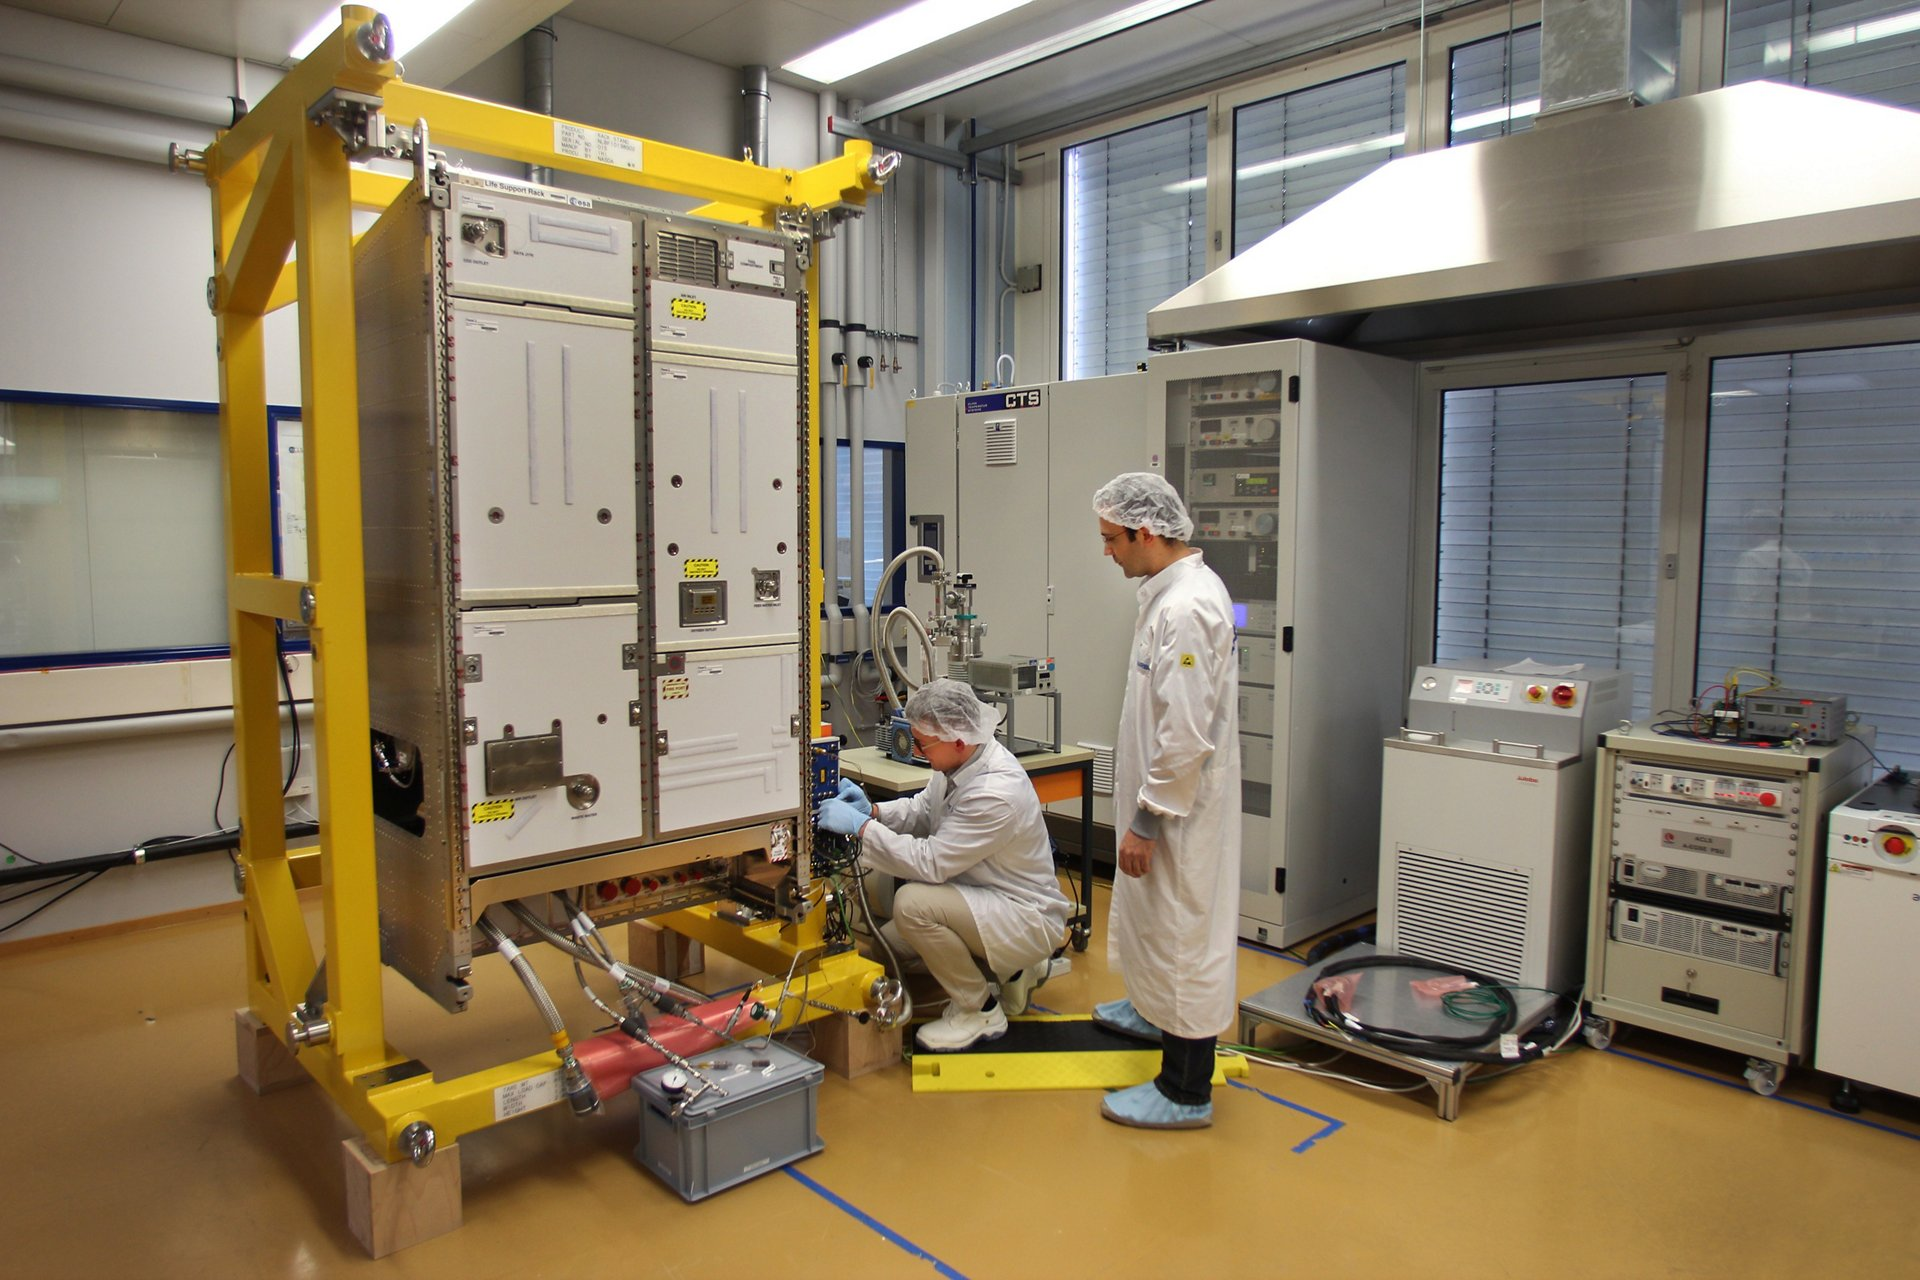 Airbus delivers new life support system for the ISS